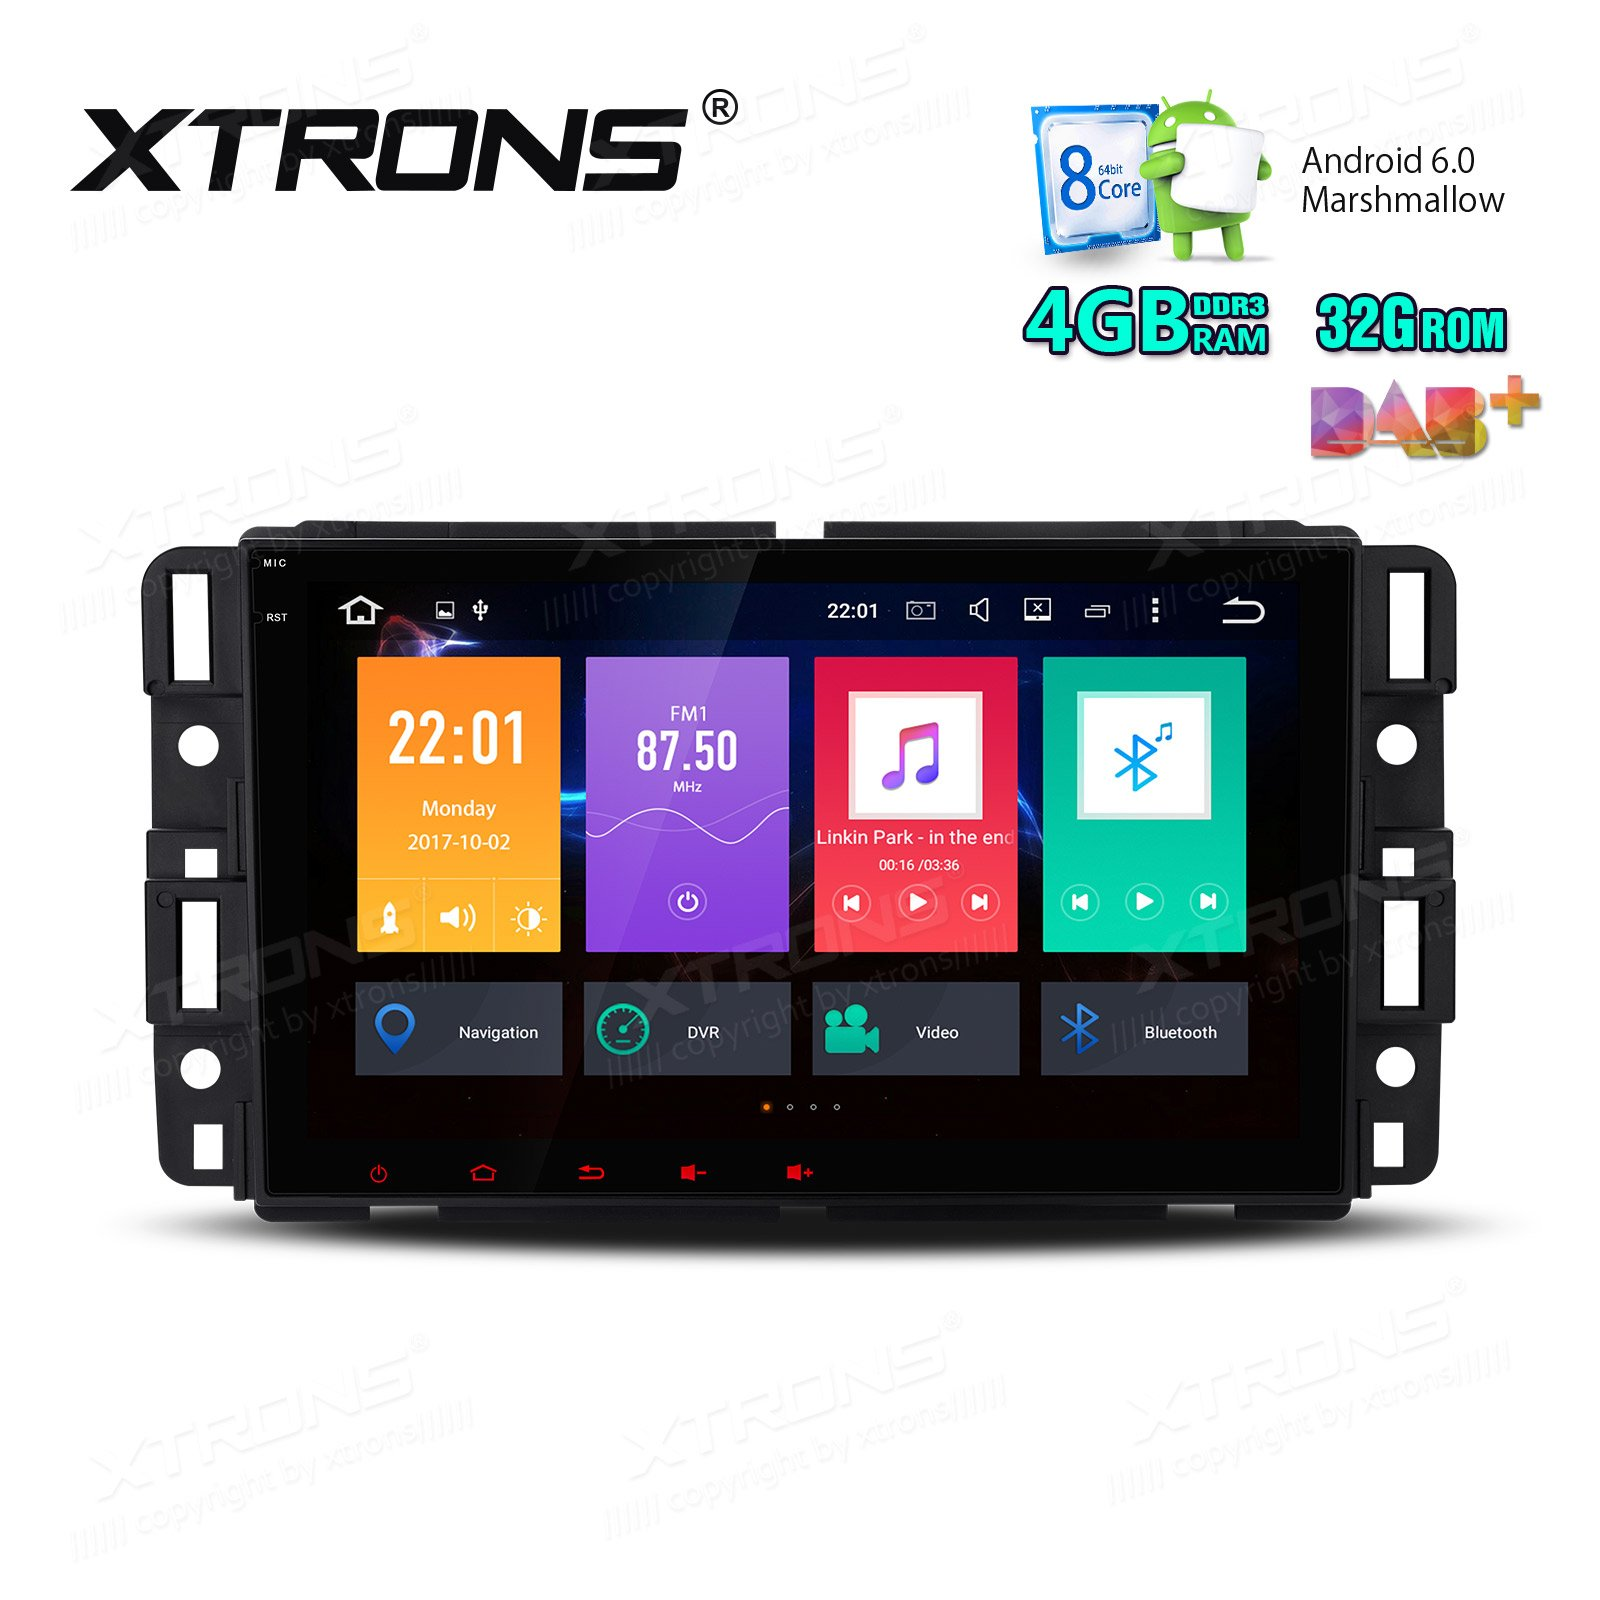 XTRONS 8 Inch Octa Core Android 6.0 Multi Touch Screen Car Stereo Player GPS for Chevrolet GMC Buick